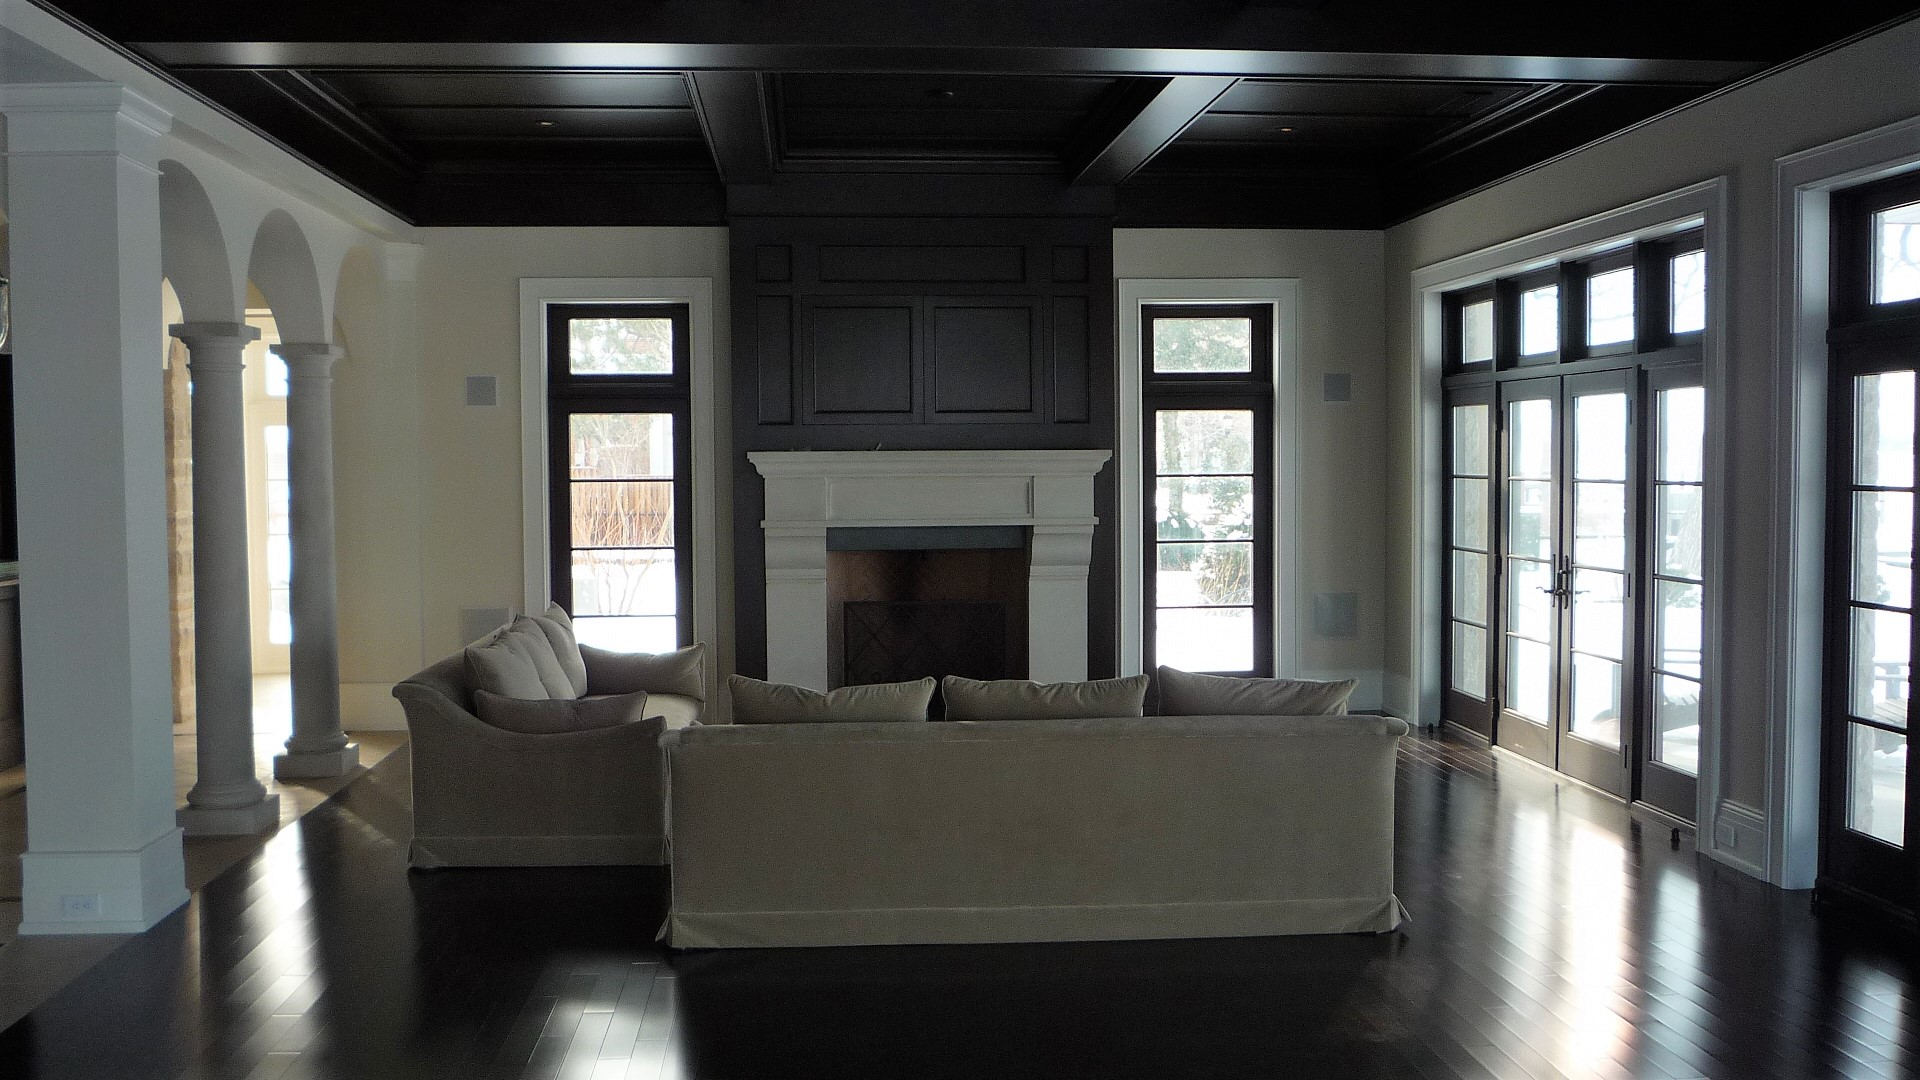 Living area walnet hardwood floor fireplace white mantle.JPG